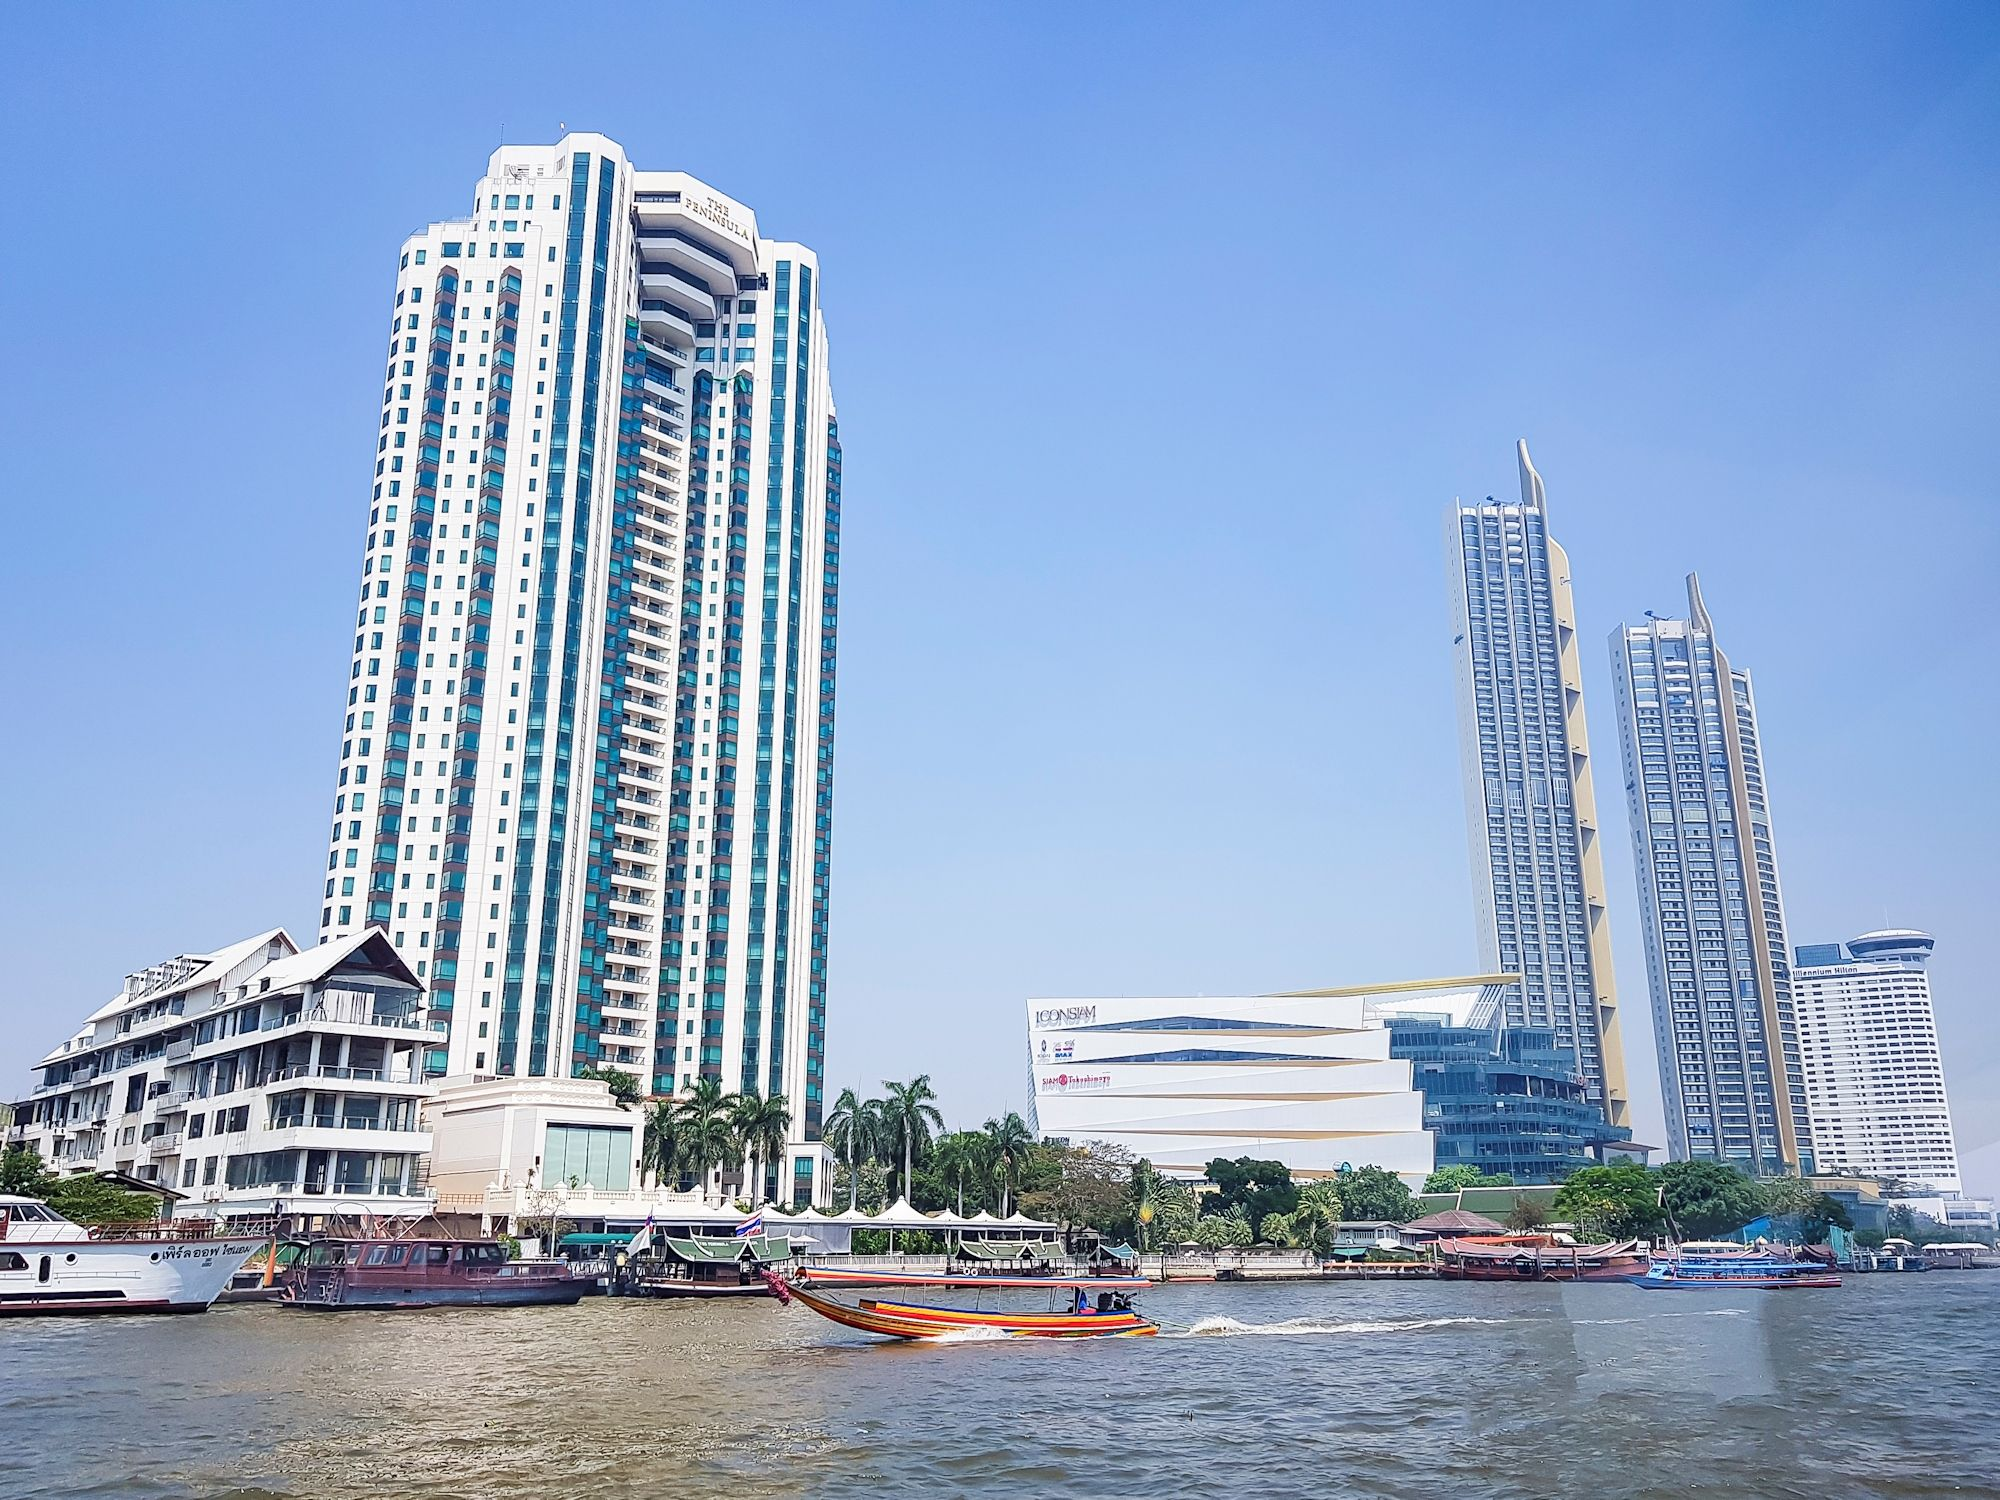 An impressive way to reach IconSiam by the water. Take BTS